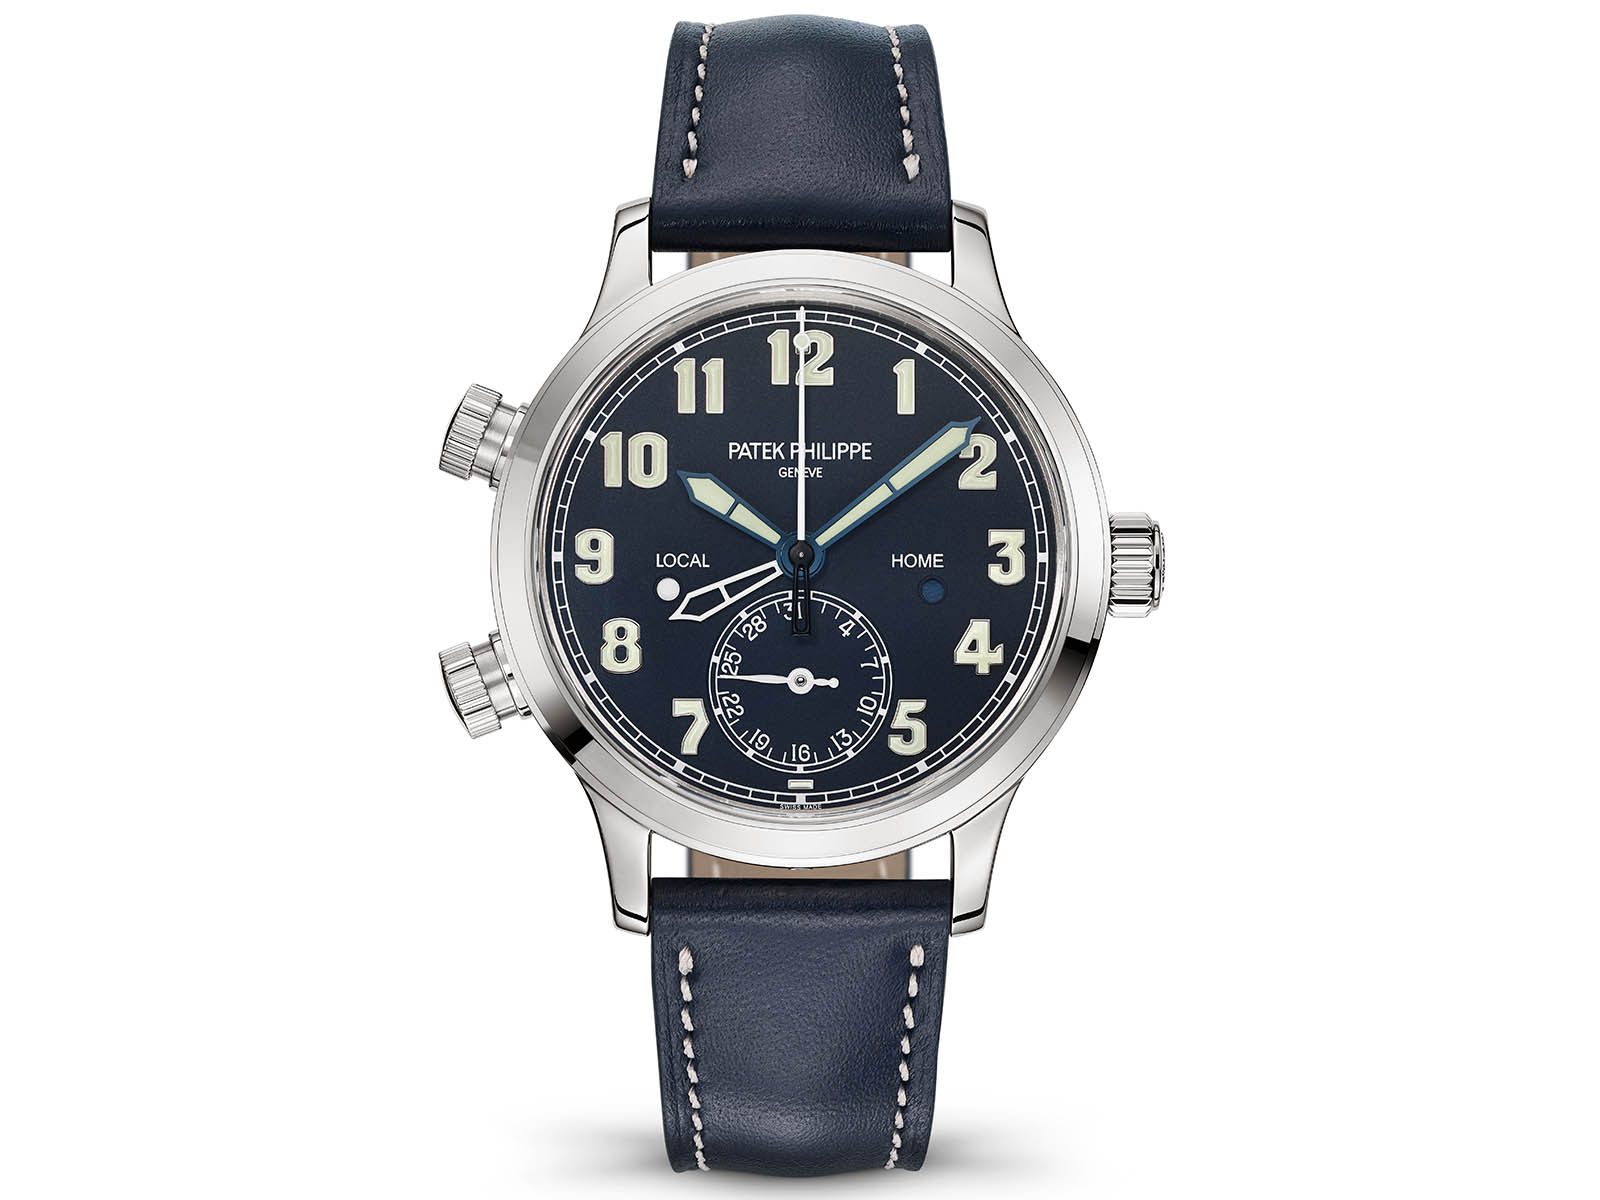 7234g-001-patek-philippe-calatrava-pilot-travel-time-8.jpg